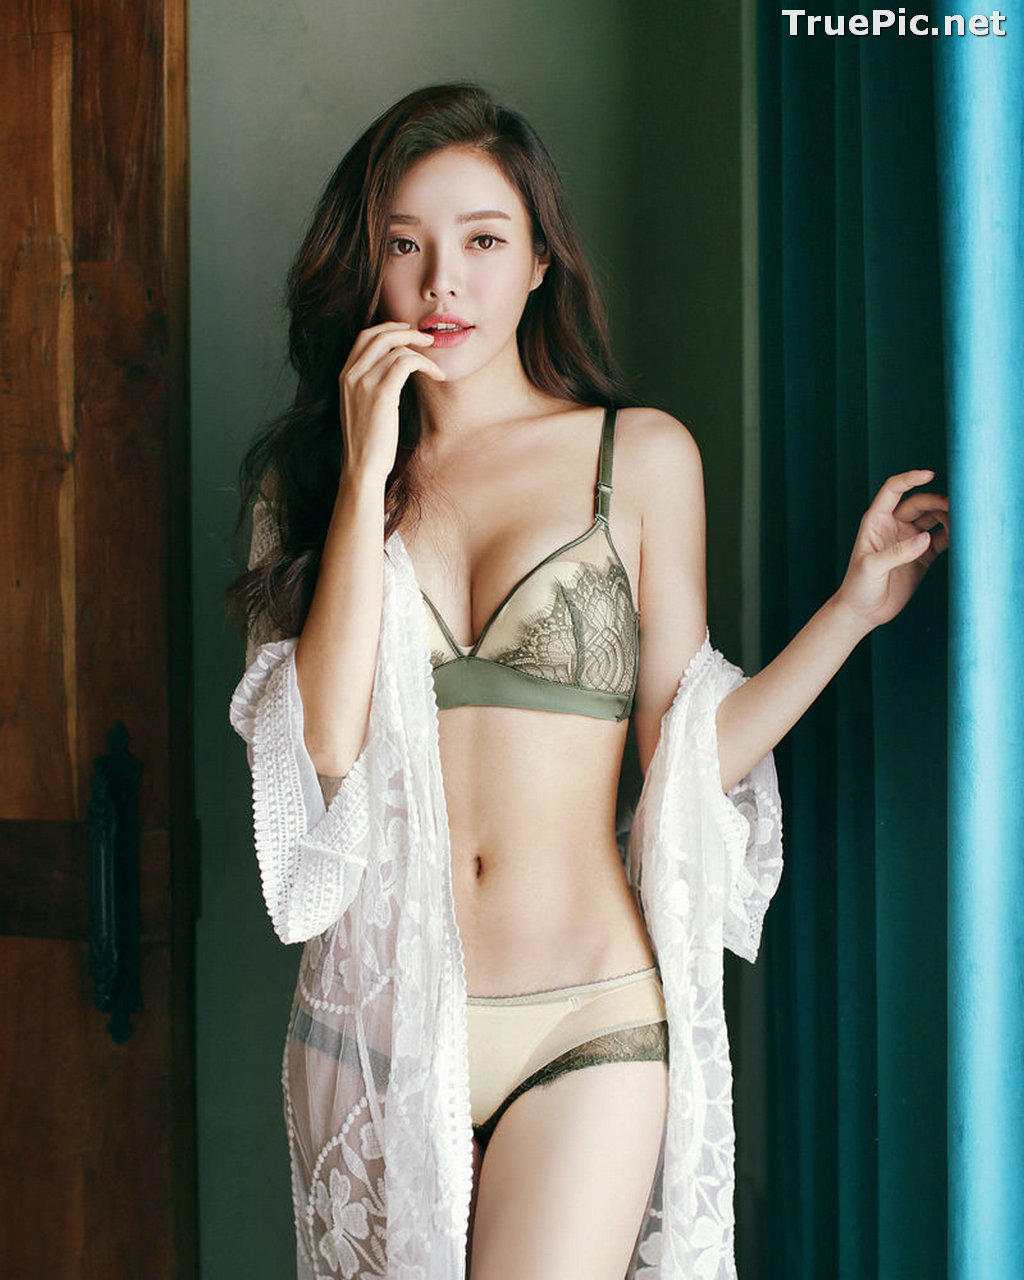 Image Korean Fashion Model – Jin Hee – Sexy Lingerie Collection #2 - TruePic.net - Picture-6